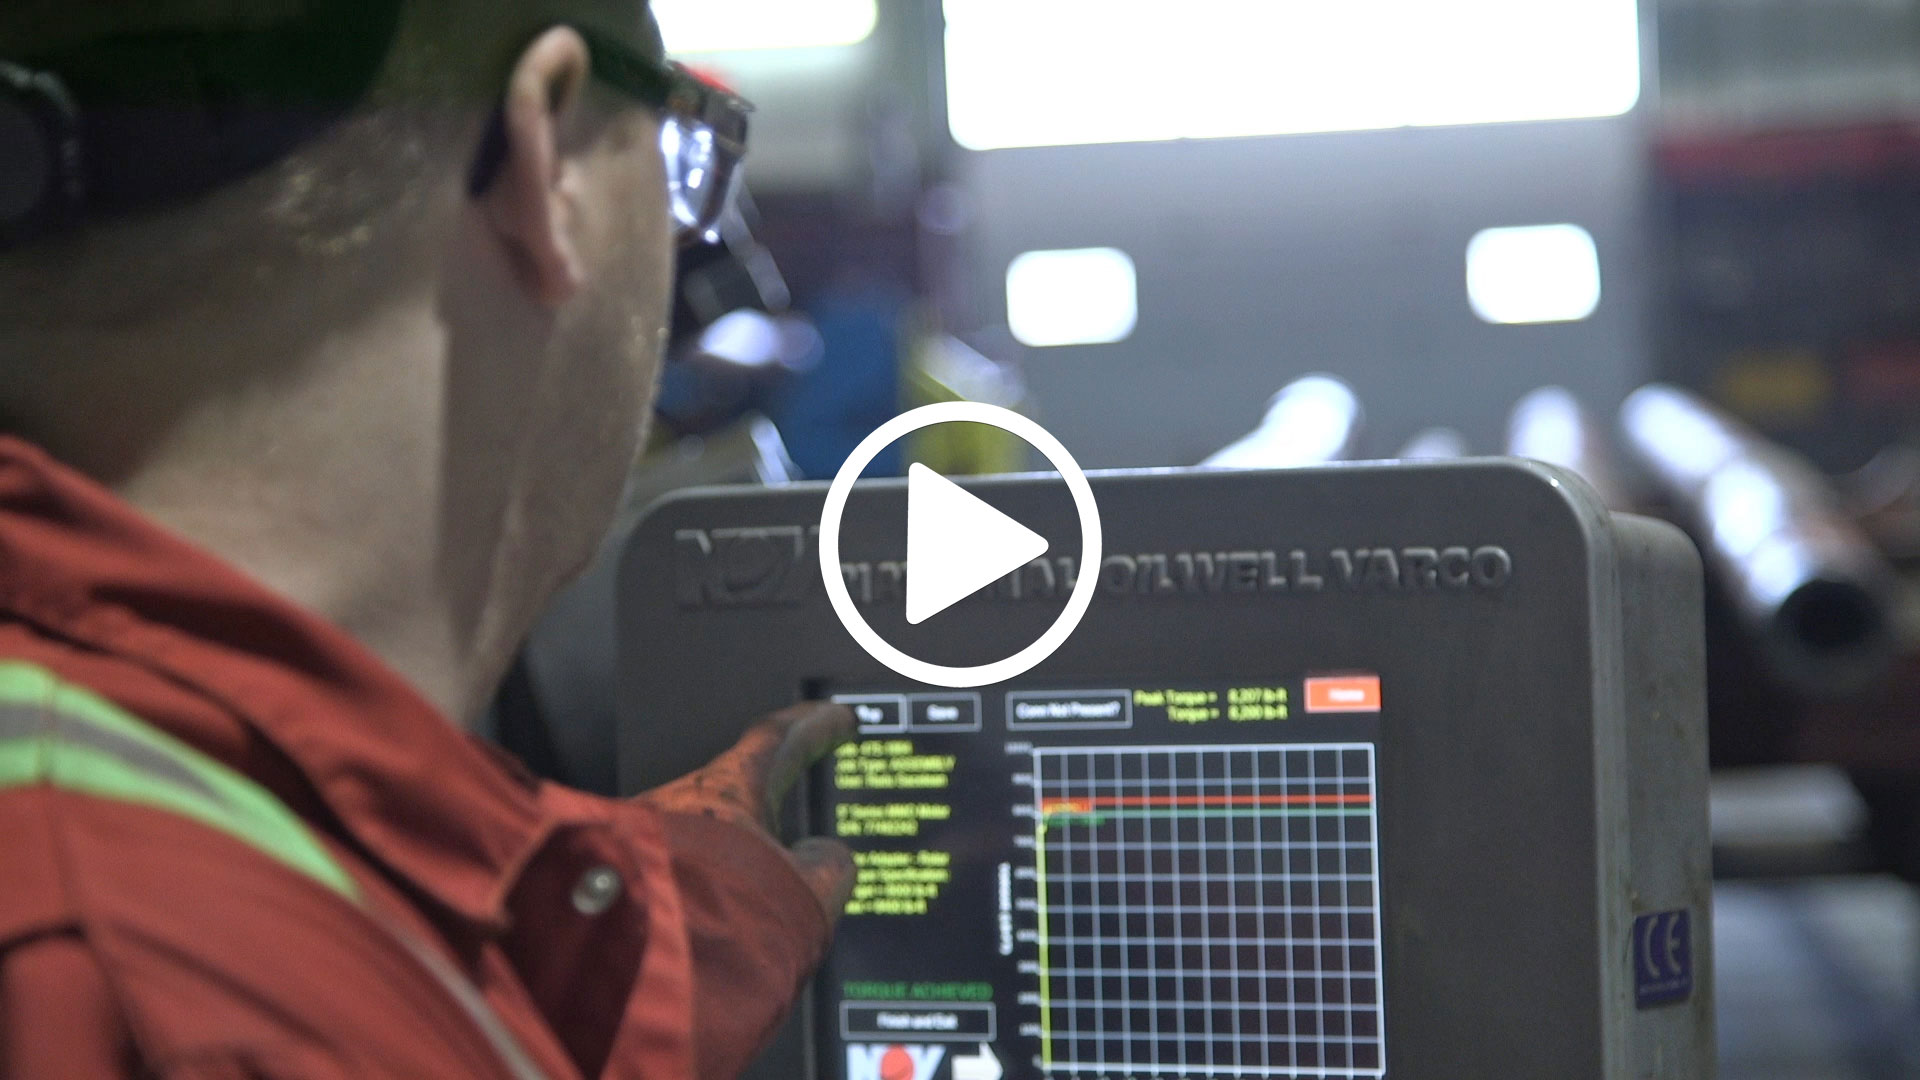 Watch our careers video for available job opening Directional Driller in Houston, TX